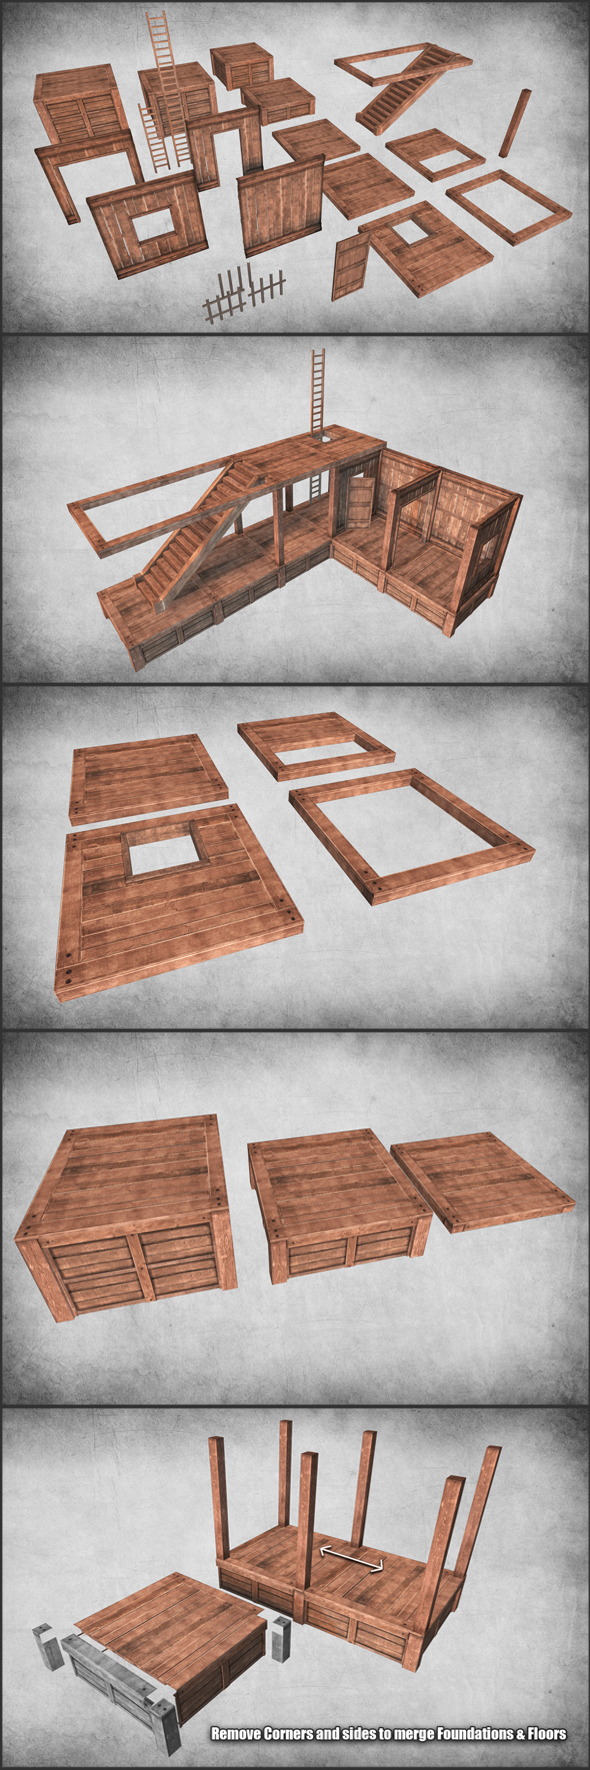 Survival Wood Crafting Kit - 3DOcean Item for Sale